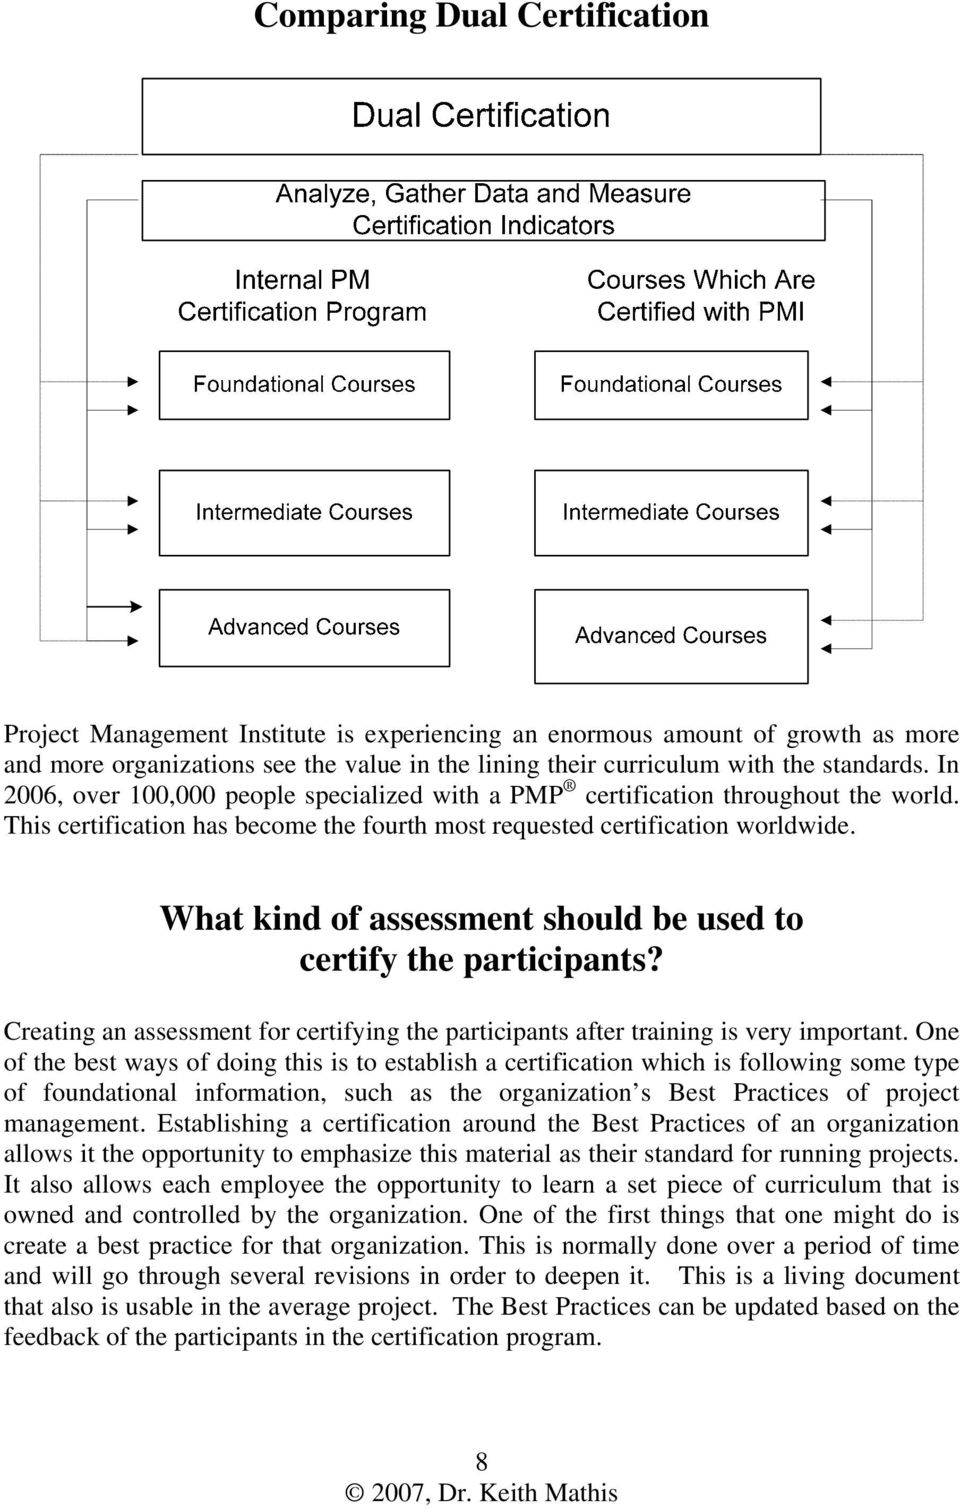 What kind of assessment should be used to certify the participants? Creating an assessment for certifying the participants after training is very important.